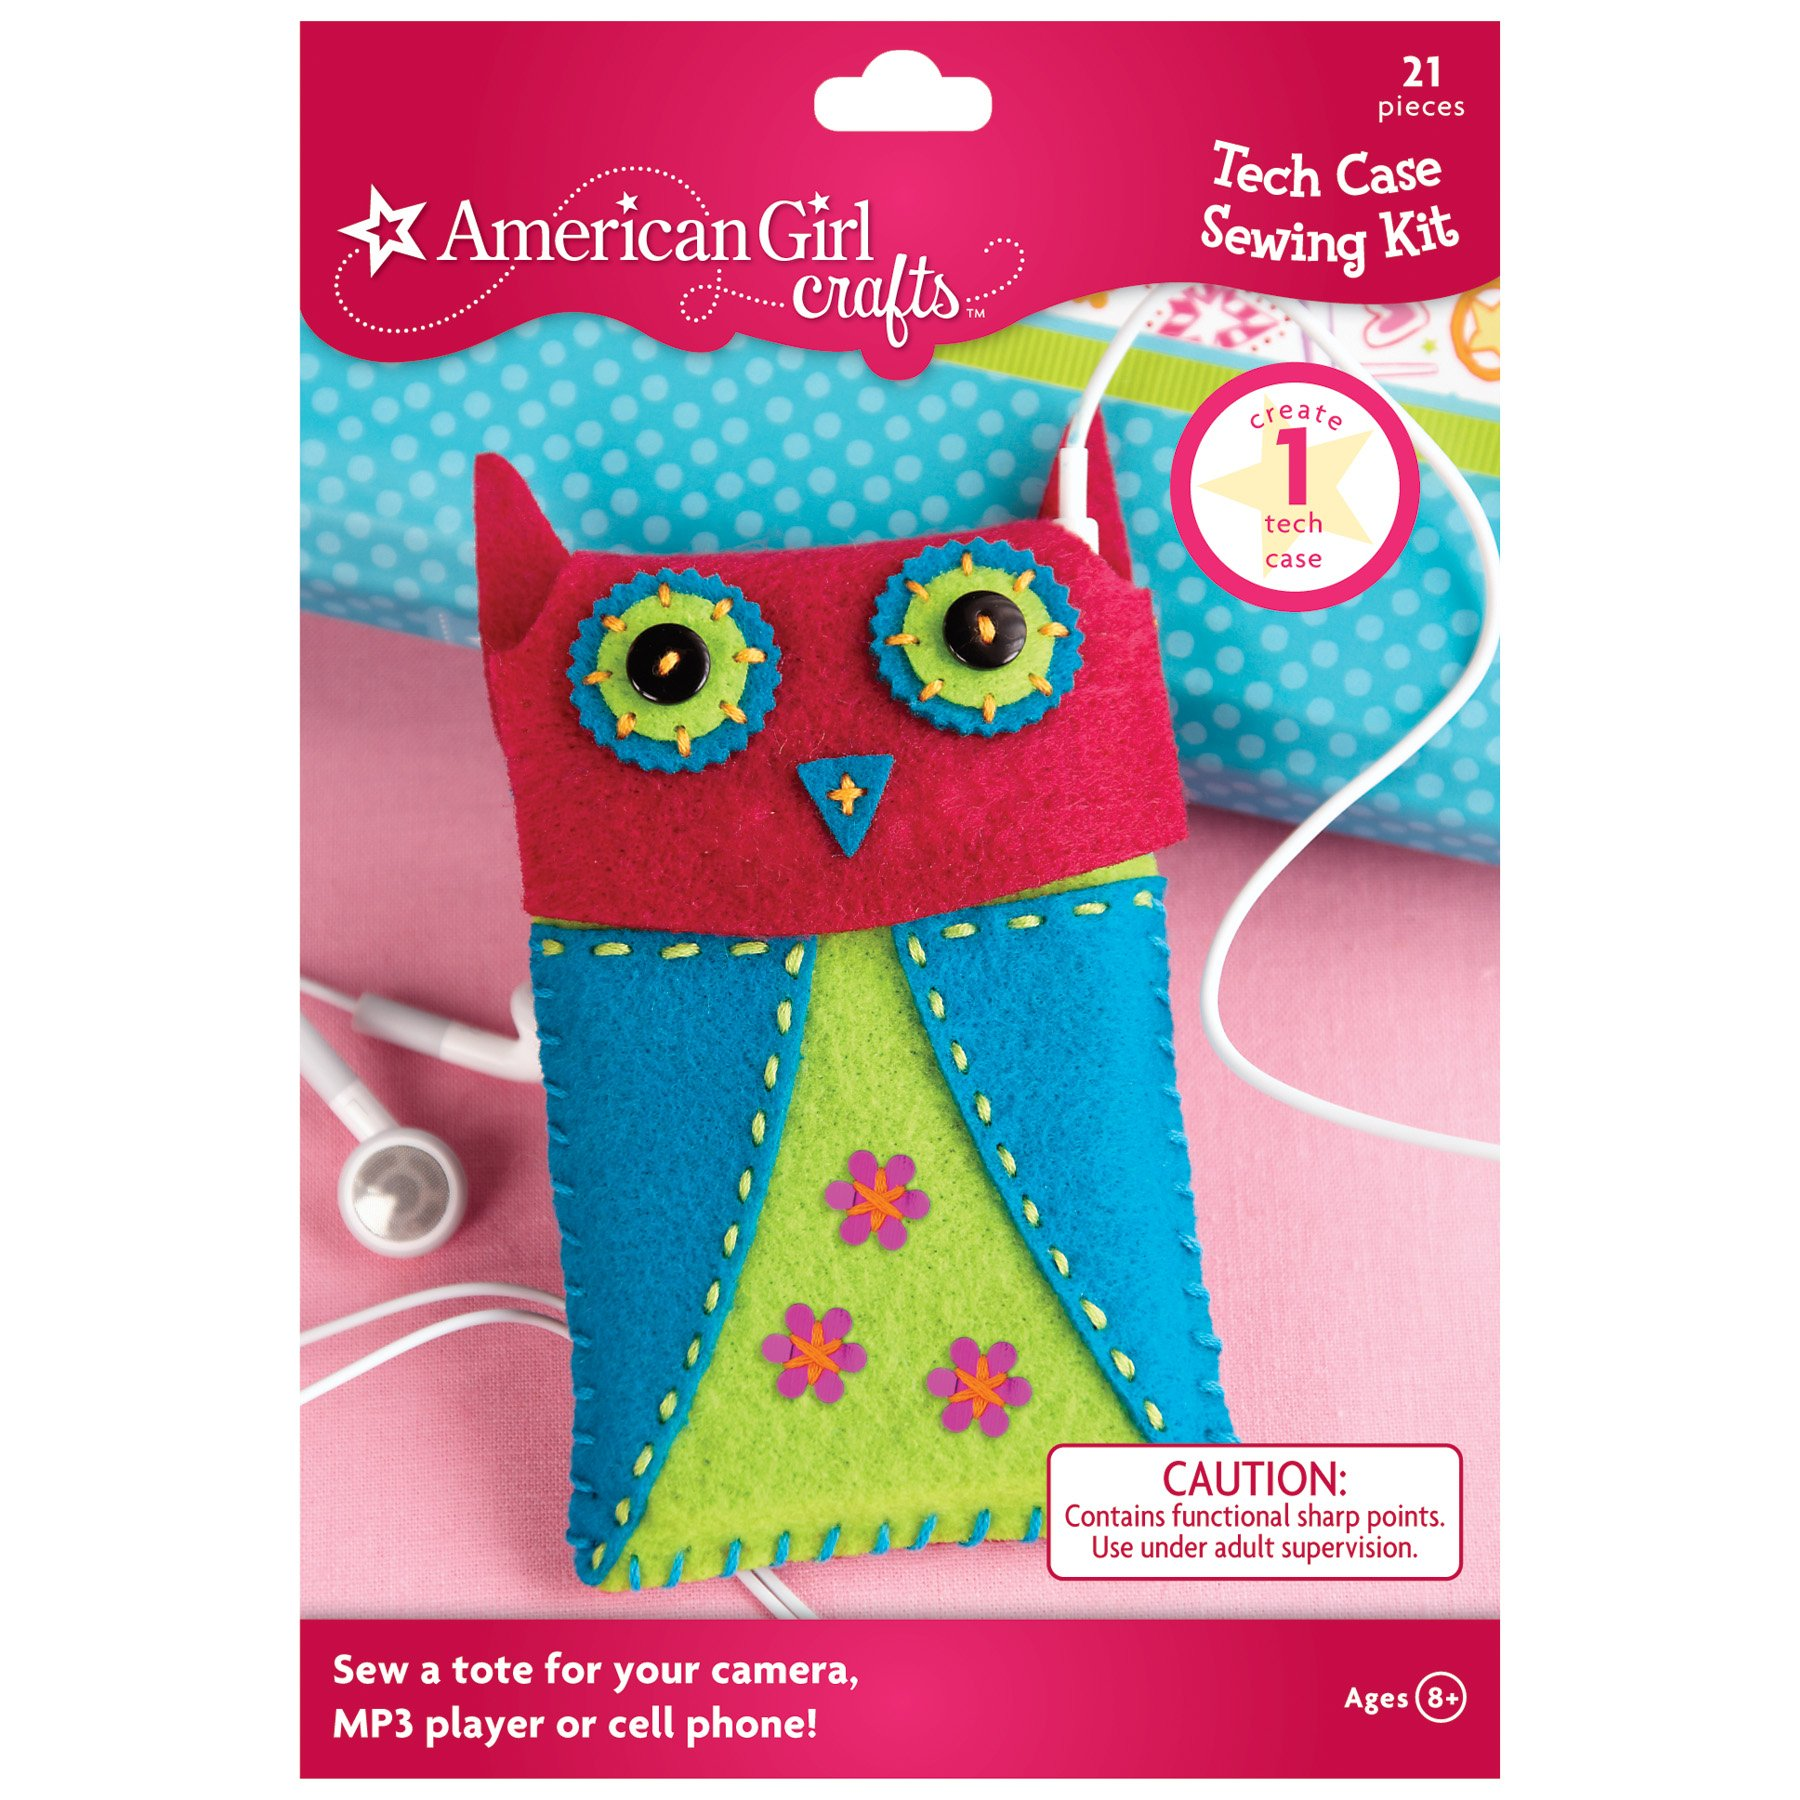 American Girl Crafts Tech Case Sewing Kit 2